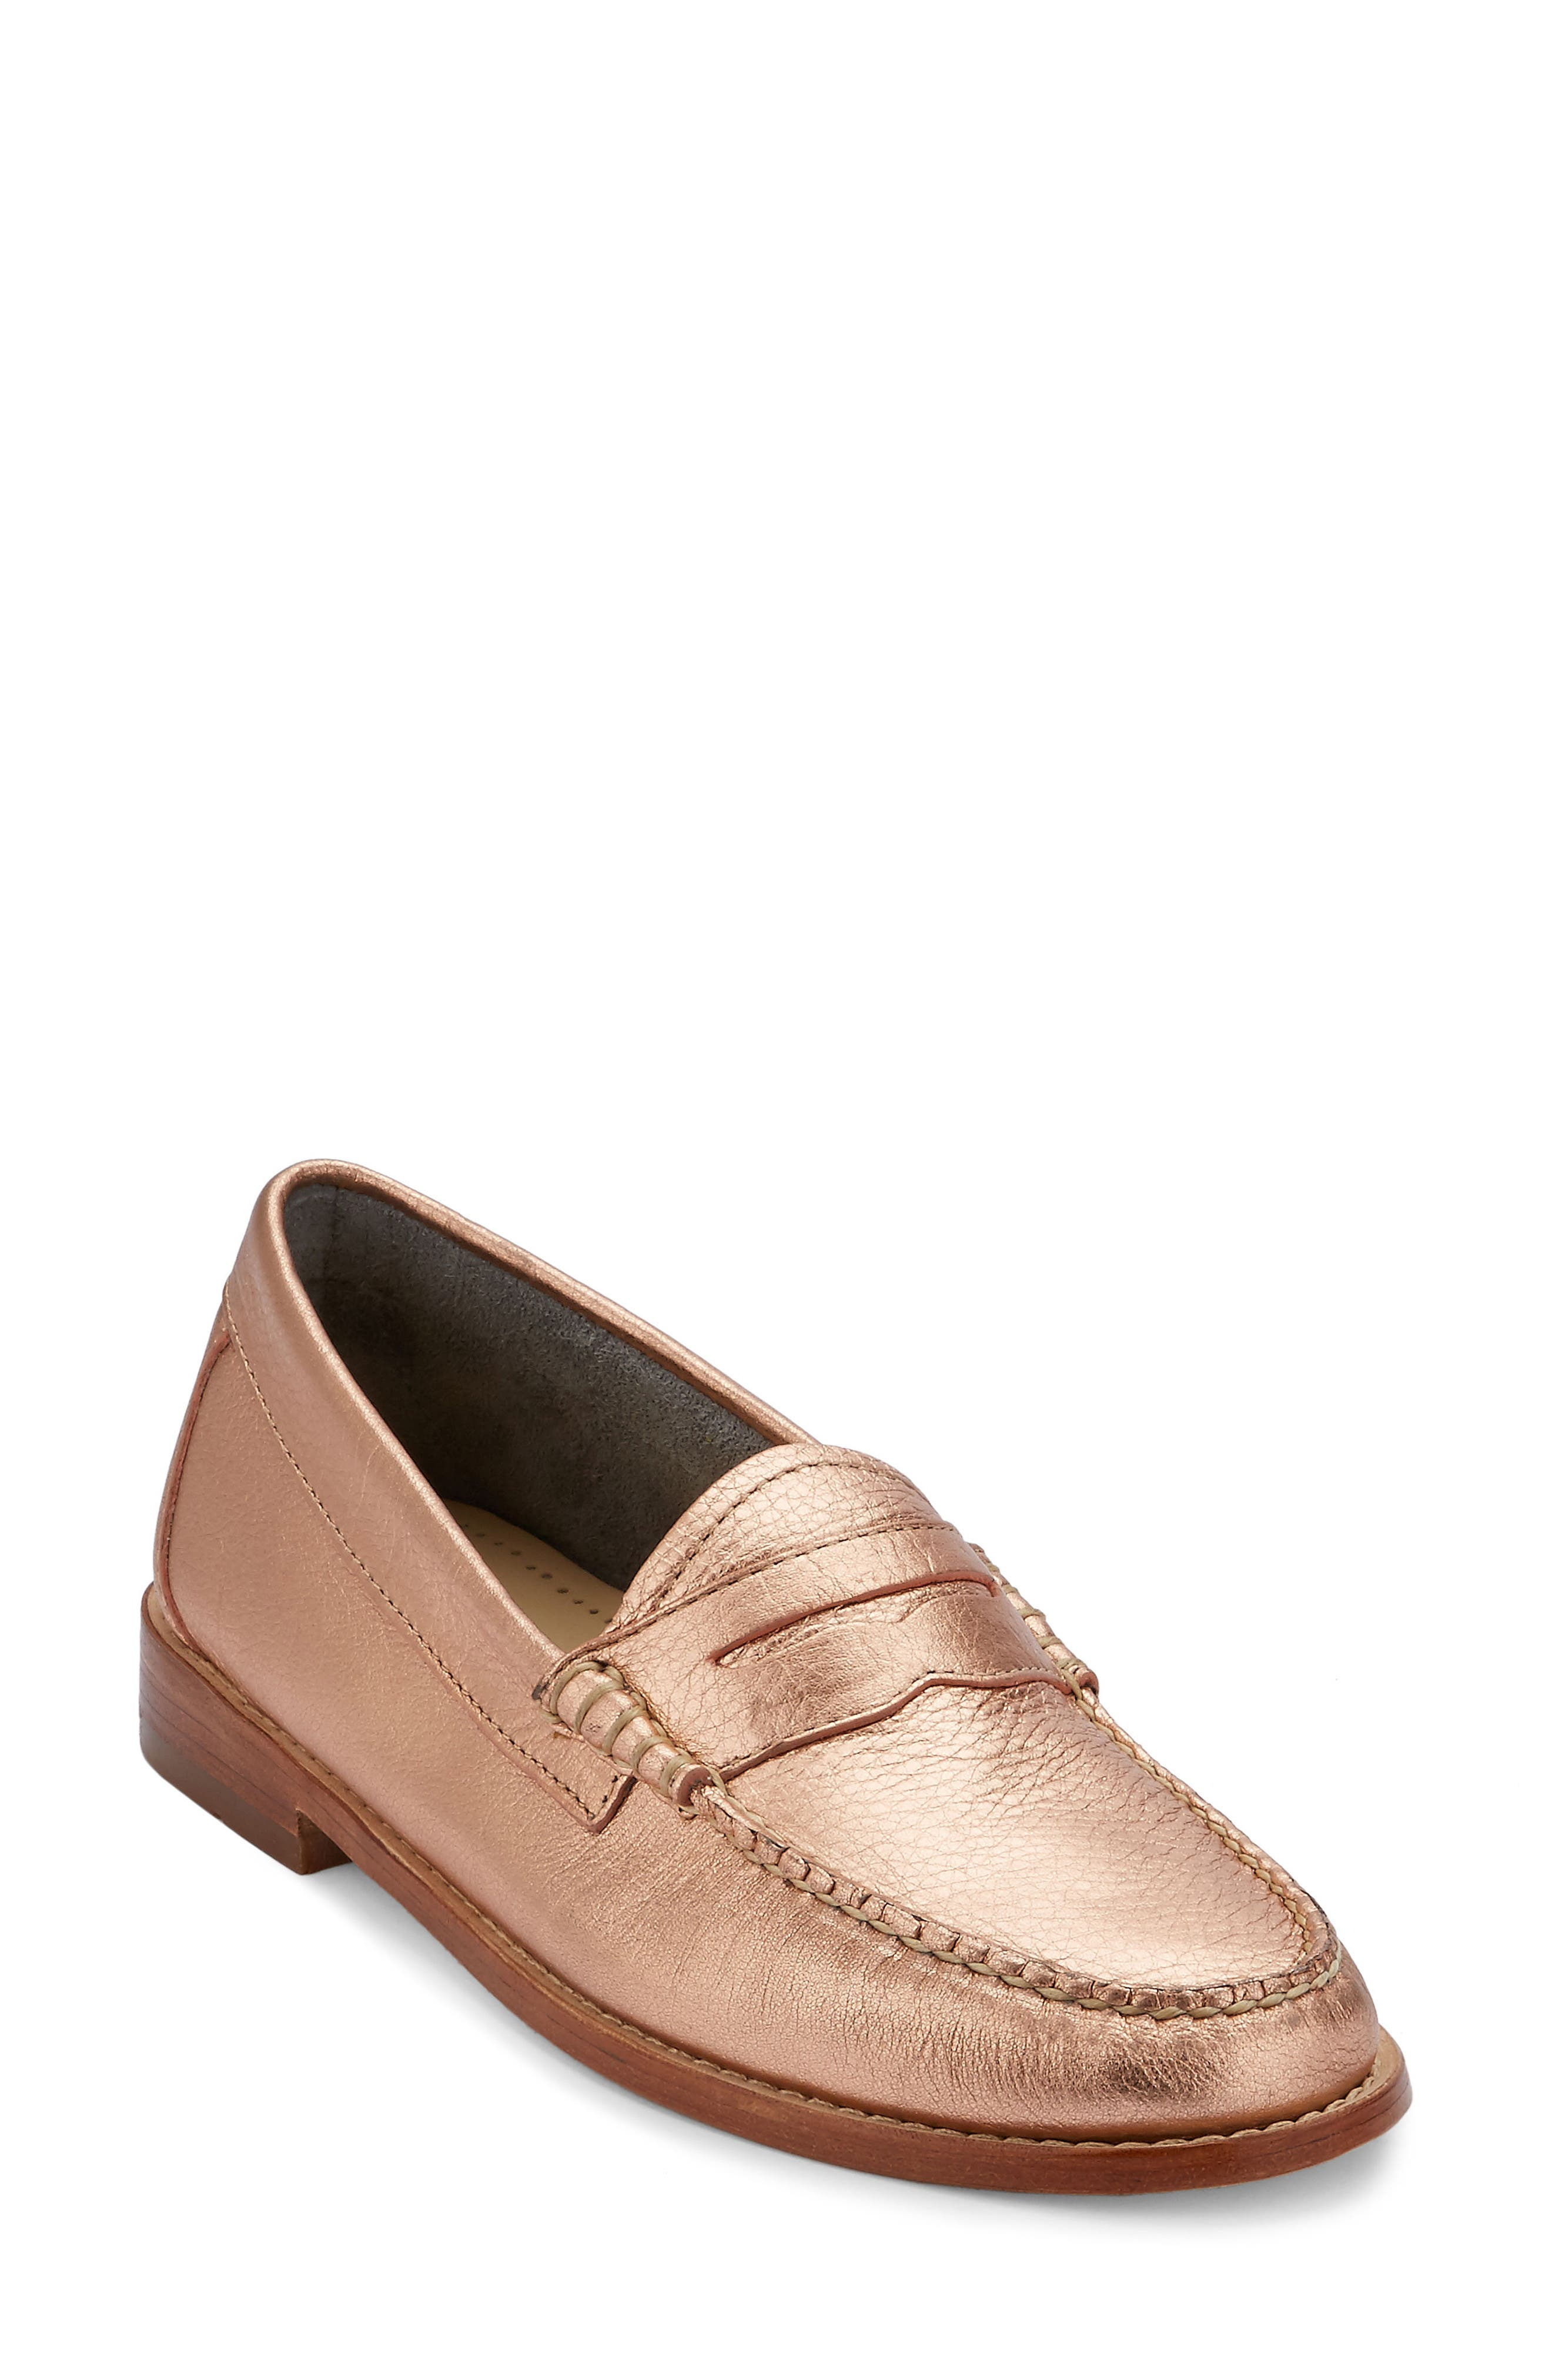 'Whitney' Loafer,                             Main thumbnail 29, color,